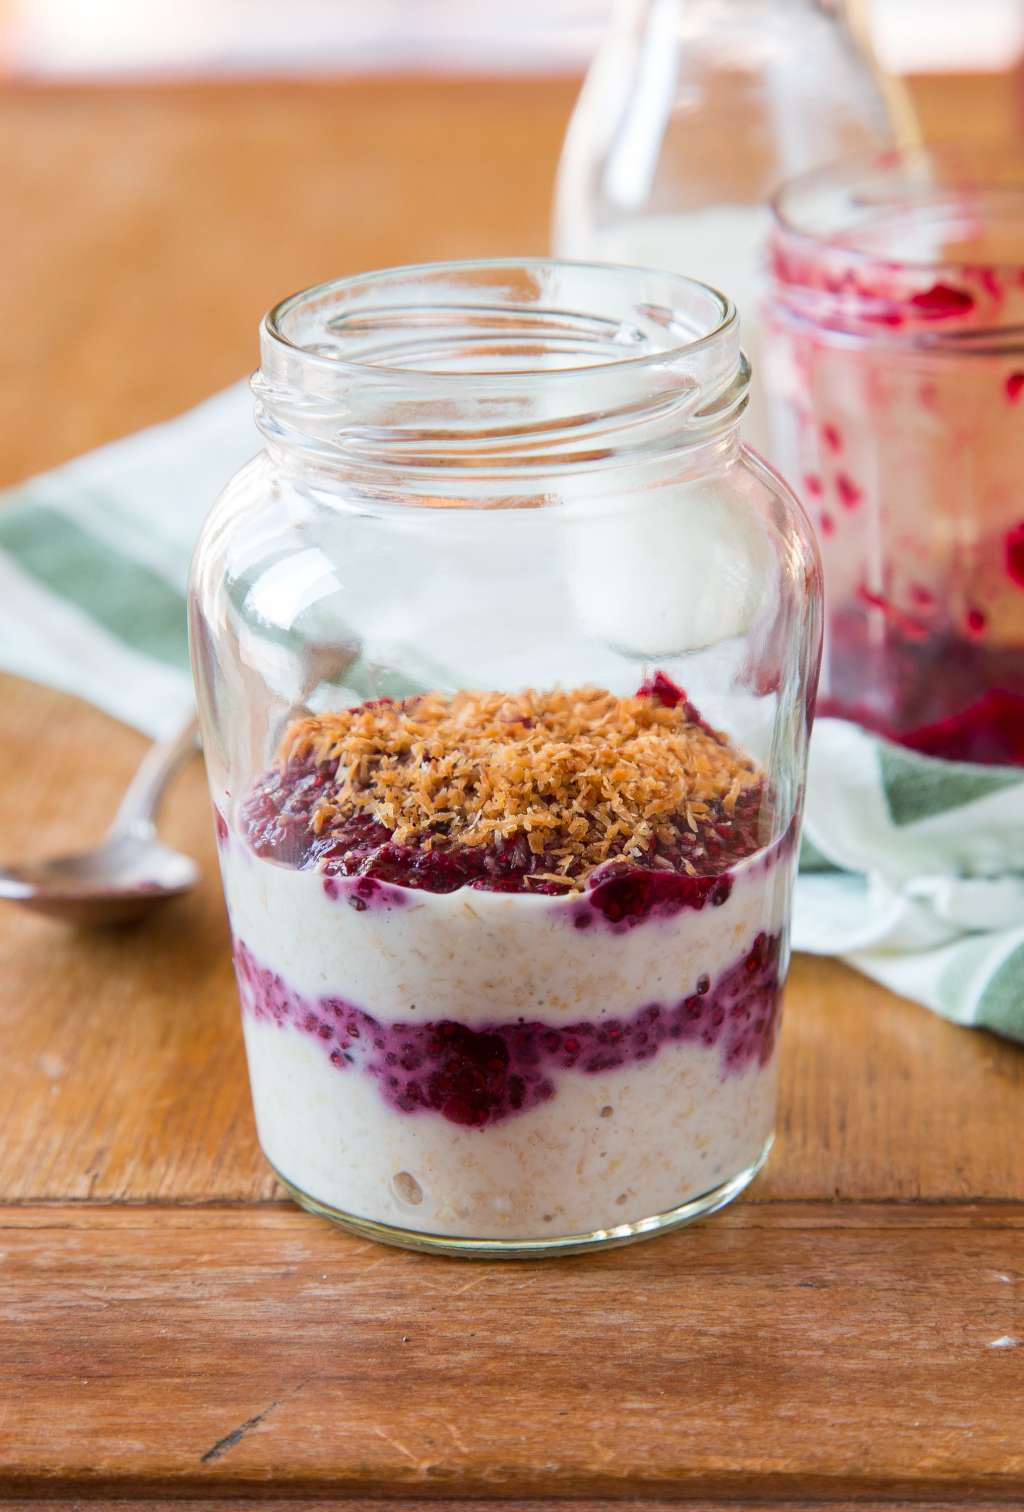 Recipe: Overnight Oats with Jam & Toasted Coconut